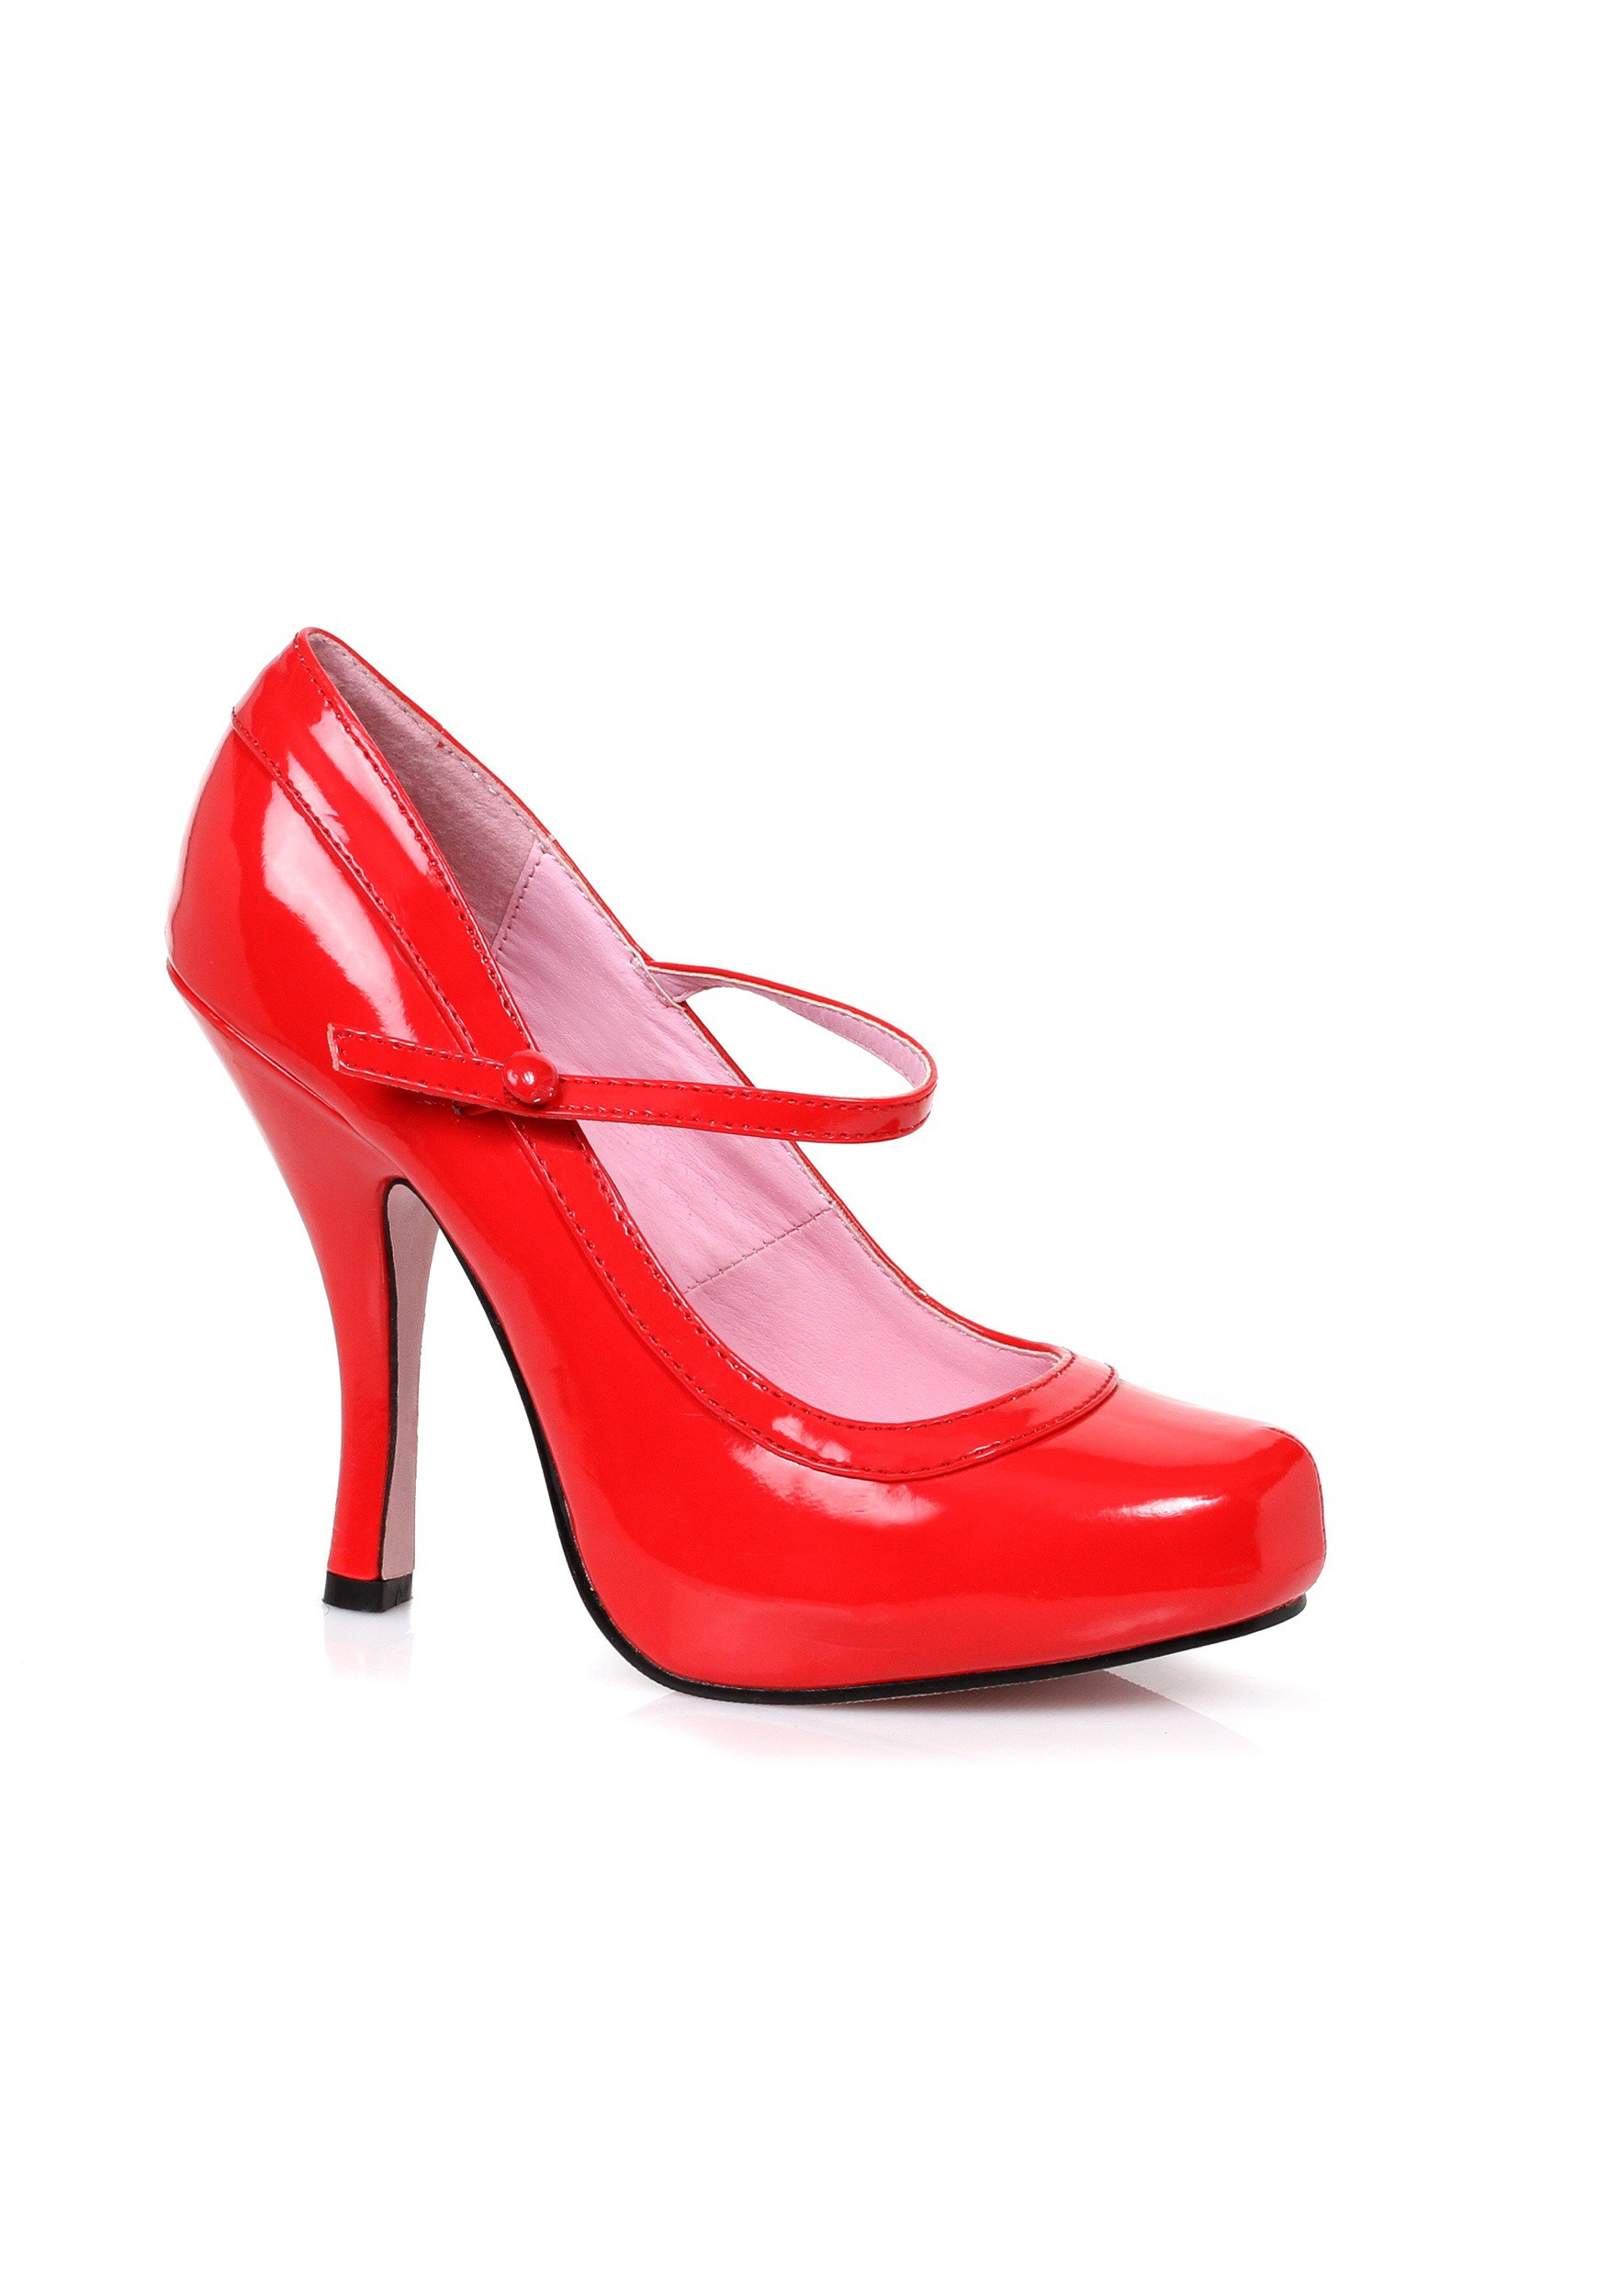 Women's Red Baby Doll Heels